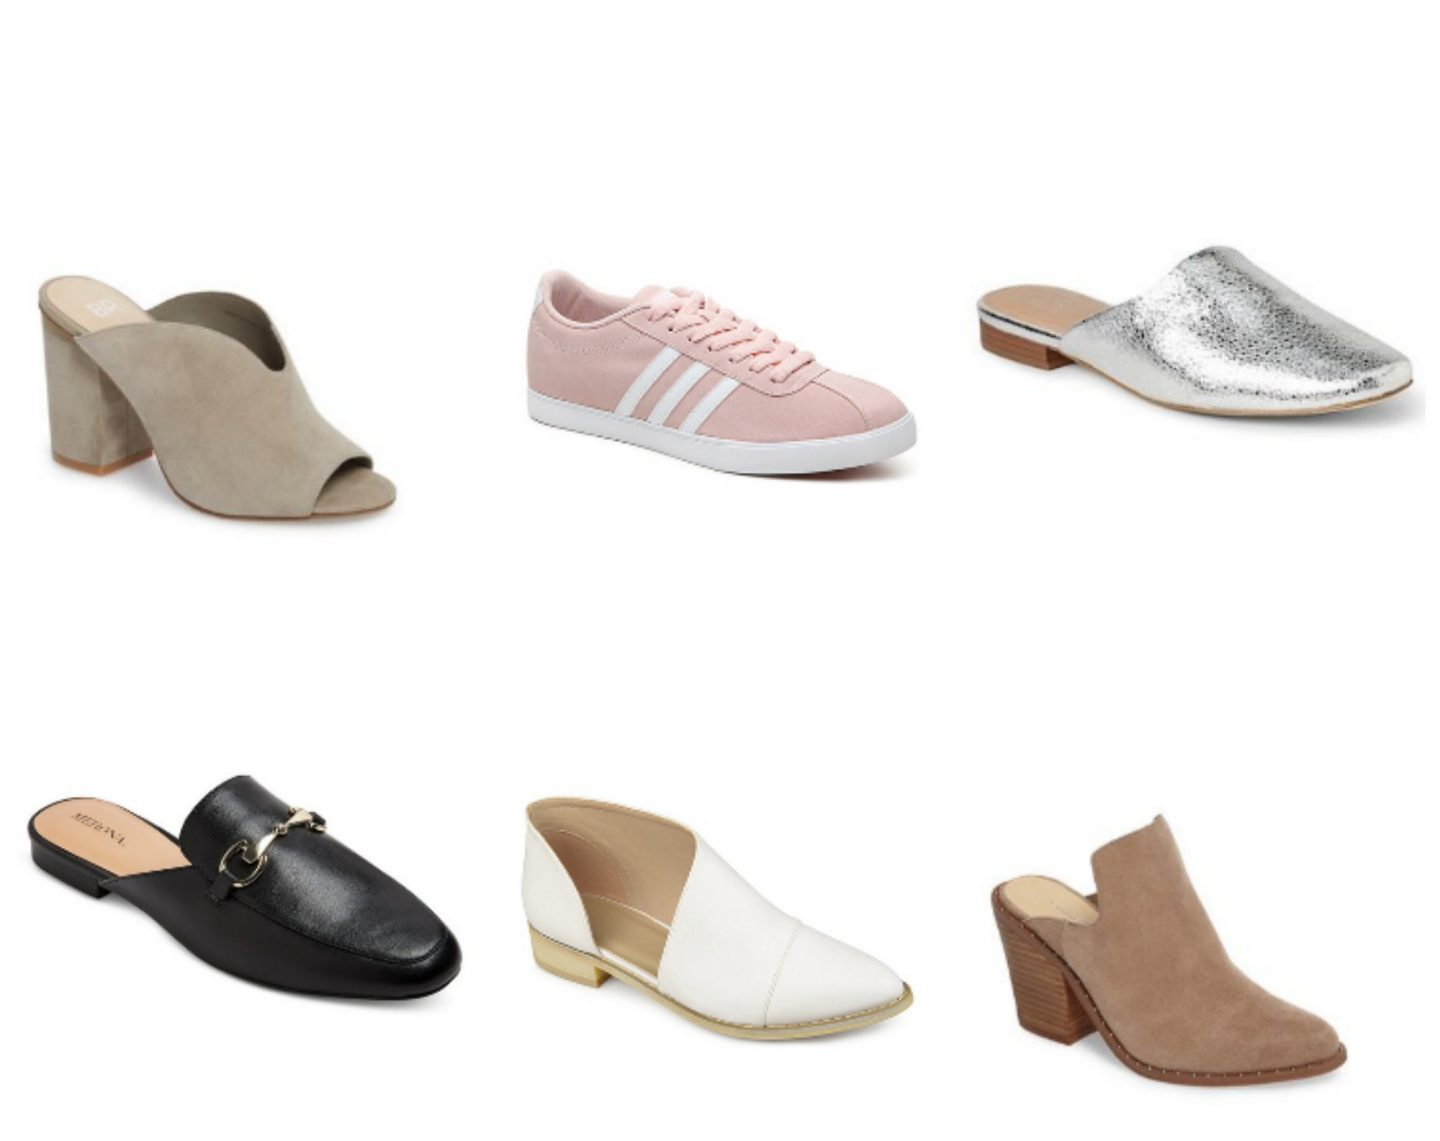 Tuesday's Cravings: Fall Transitional Shoes